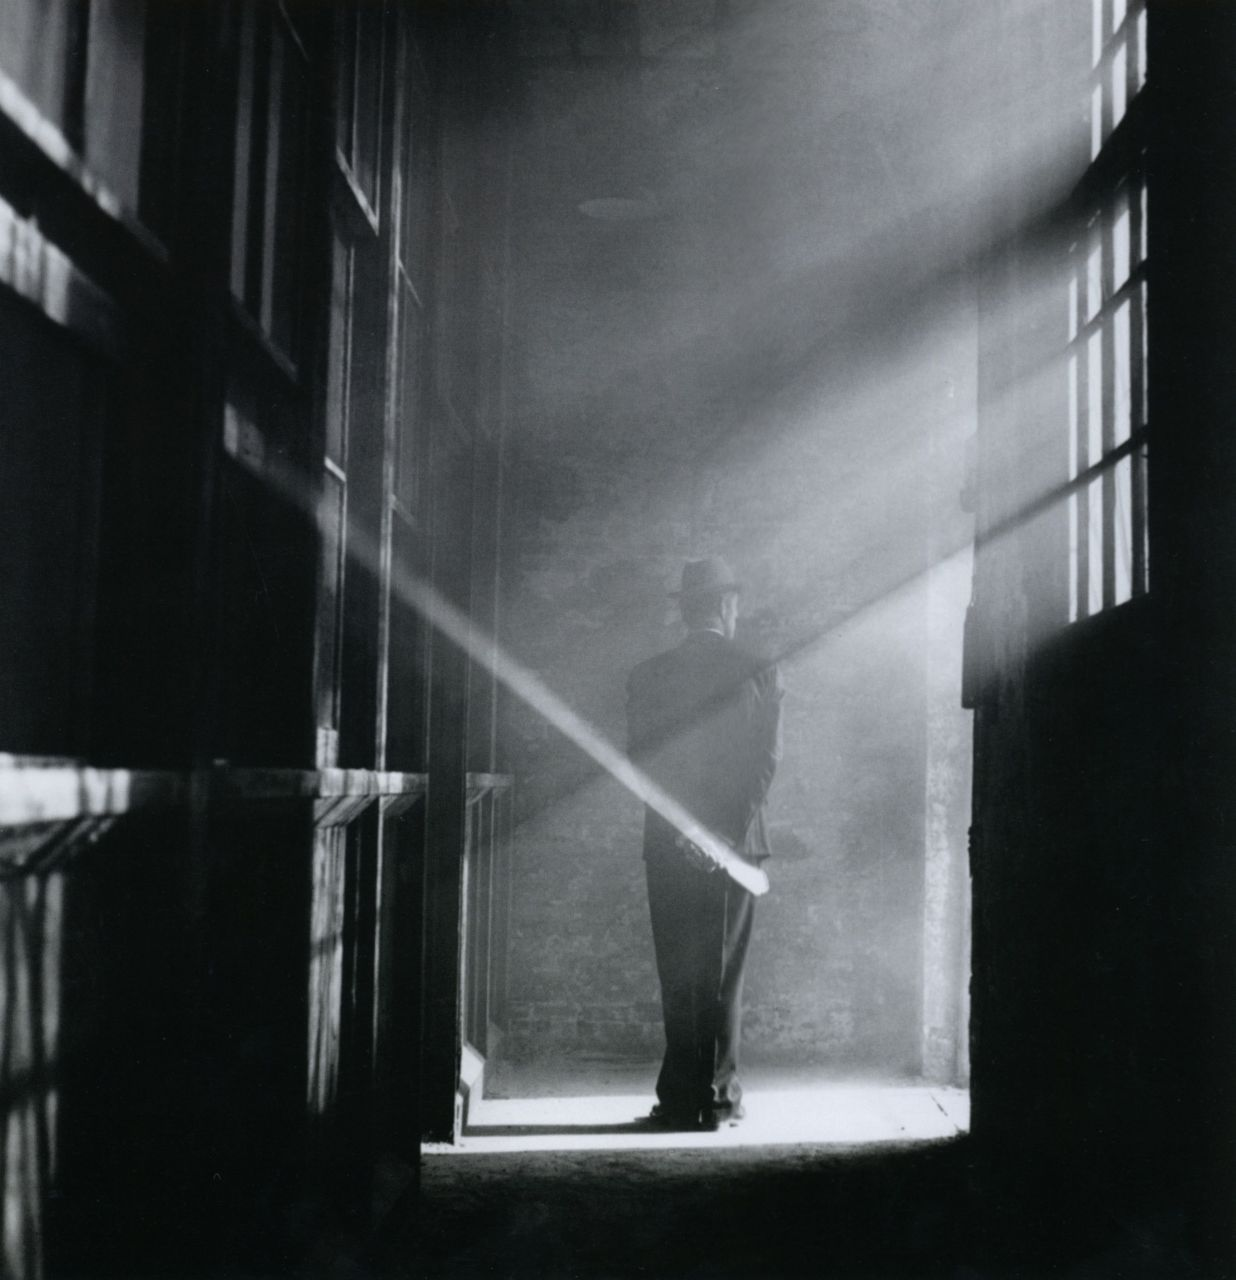 liquidnight:  Rodney Smith Dan Holding Hand Mirror in Fog, No. 1, 2000/2005 From The Unseen Eye: Photographs from the Unconscious